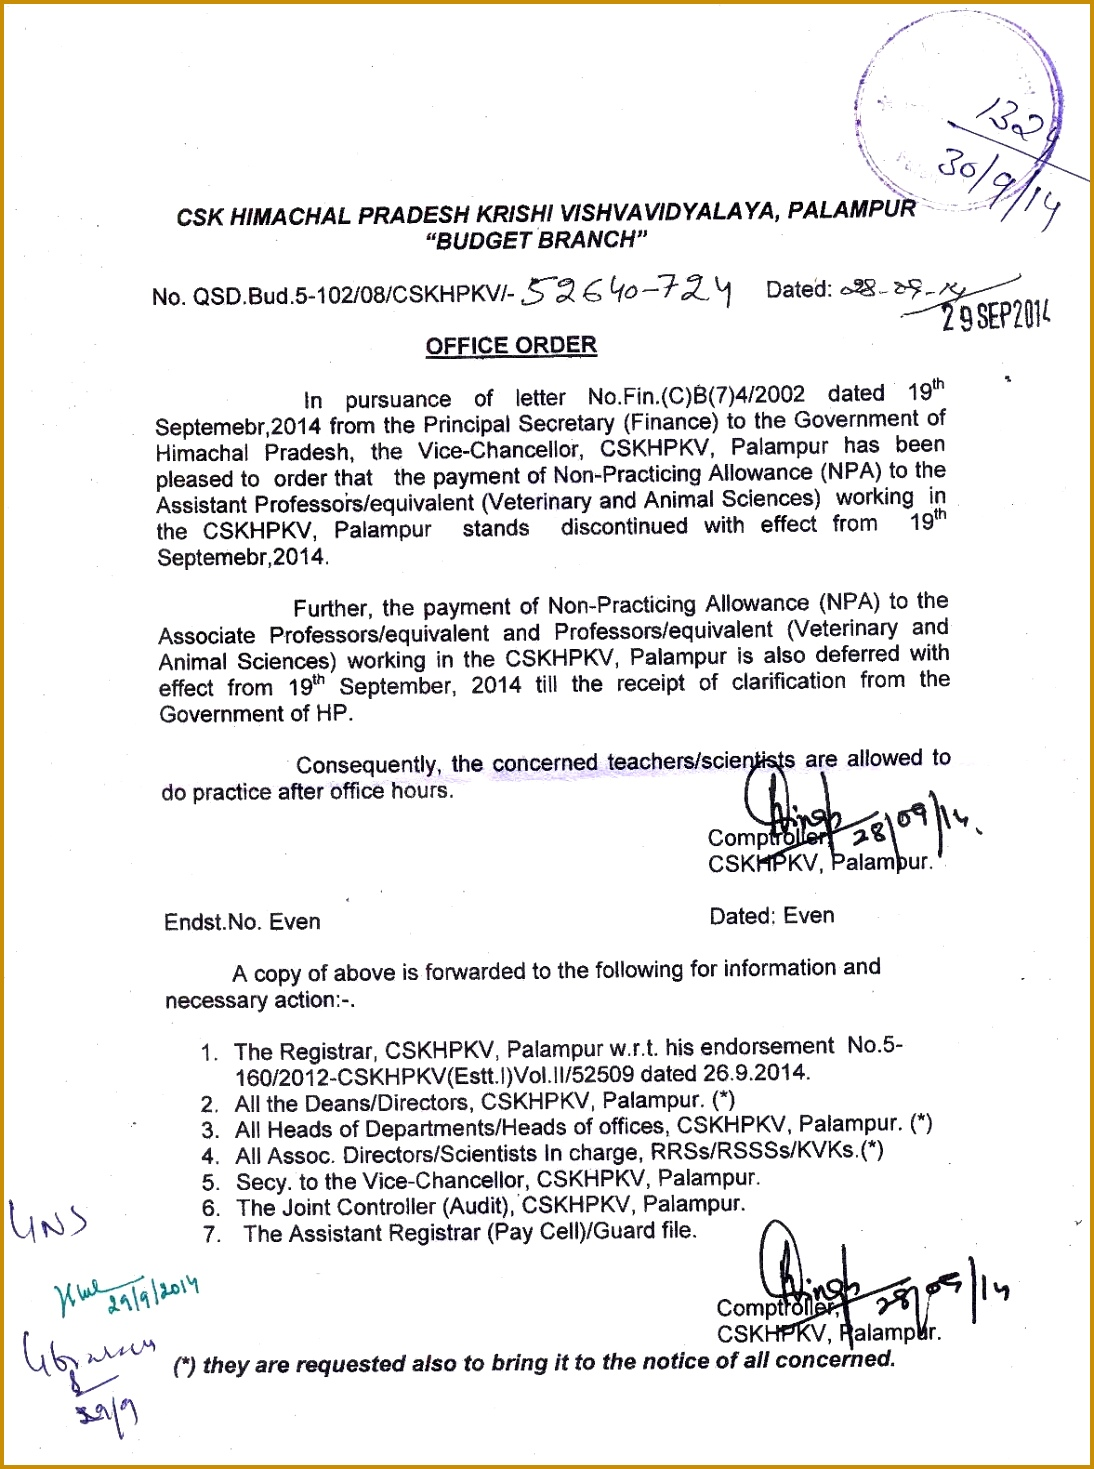 fice Order regarding the payment of Non Practicing Allowance NPA to the Asstt Prof Assoc Prof and Professors equivalent Vety and Animal Sciences 14691094